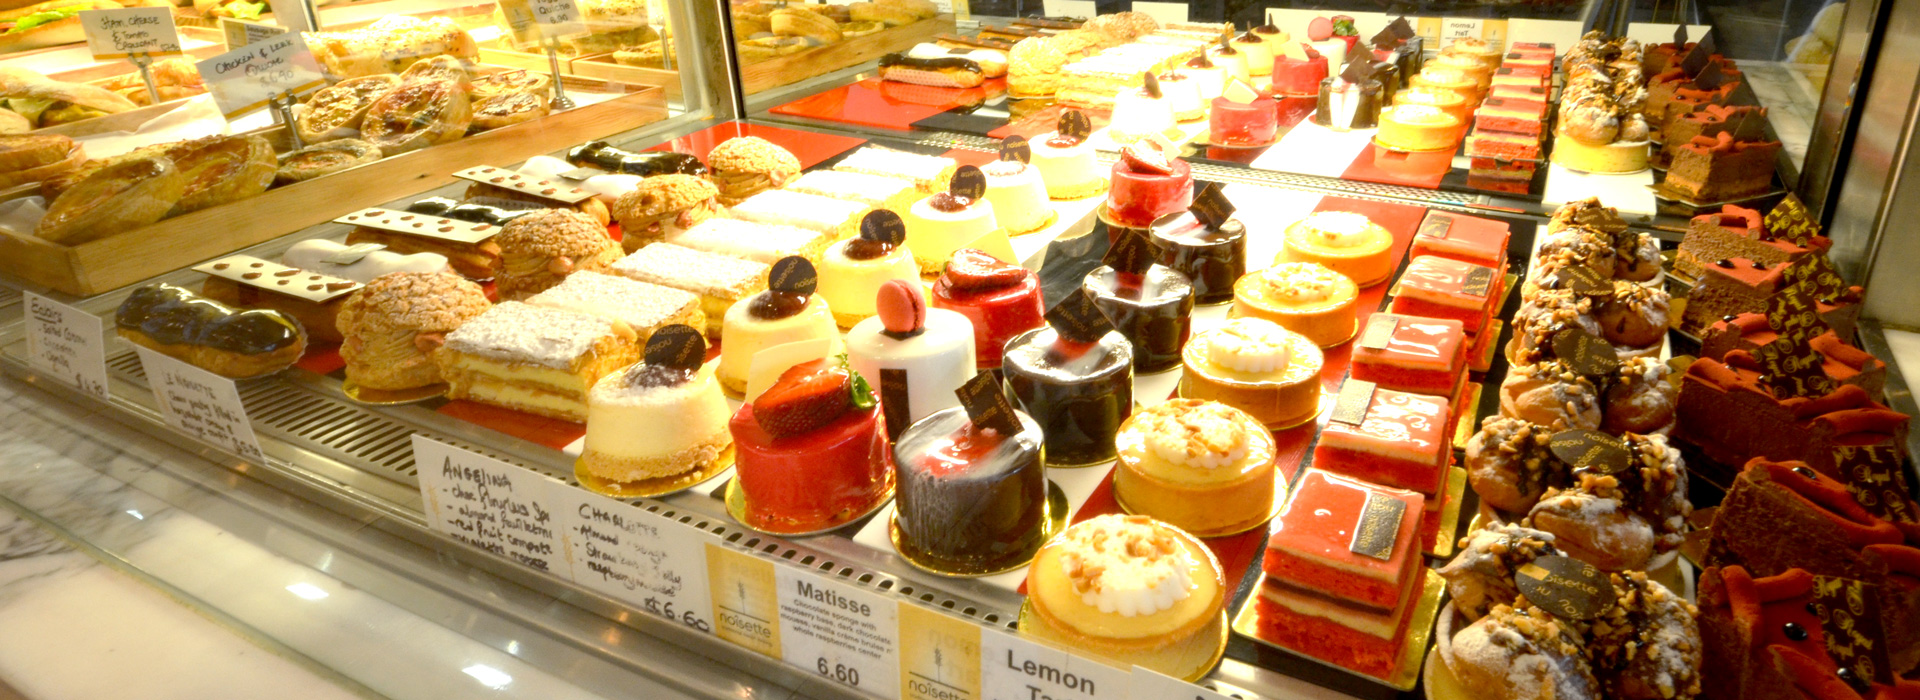 Best Cakes And Pastries Melbourne